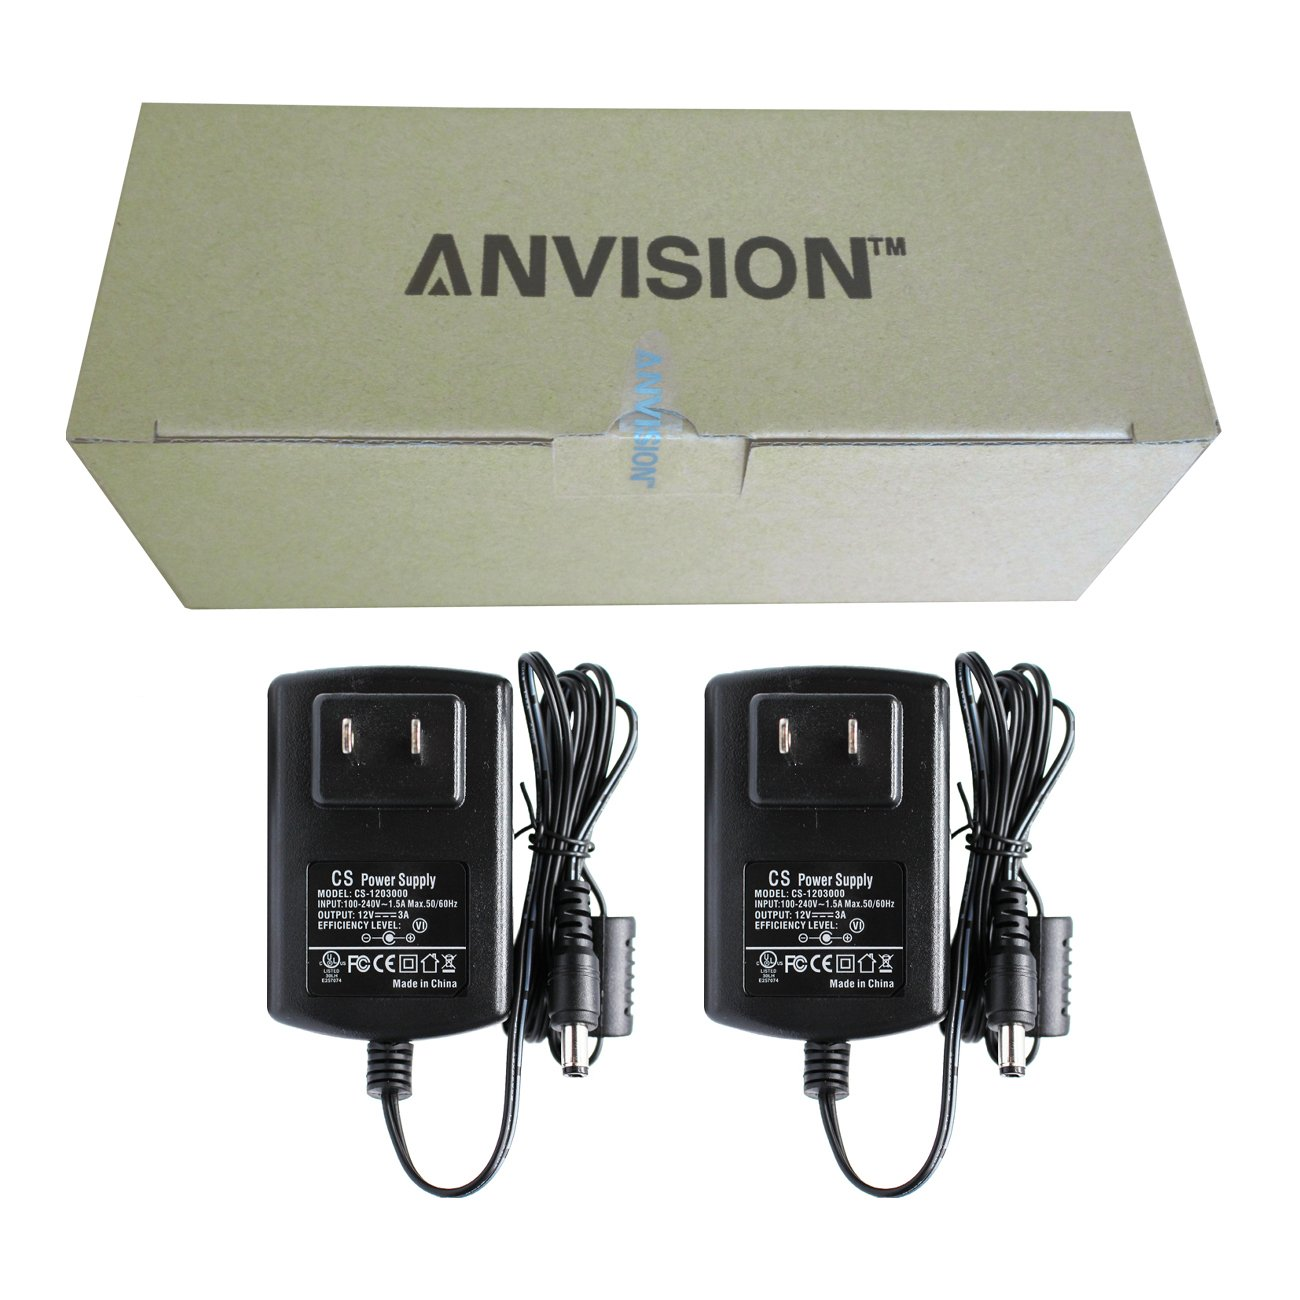 ANVISION 2-Packs AC to DC 12V 3A 36W Power Supply Adapter 5.5x2.1mm for Led Light Strips DVR CCTV Camera UL Listed FCC RoHS Efficiency Level VI